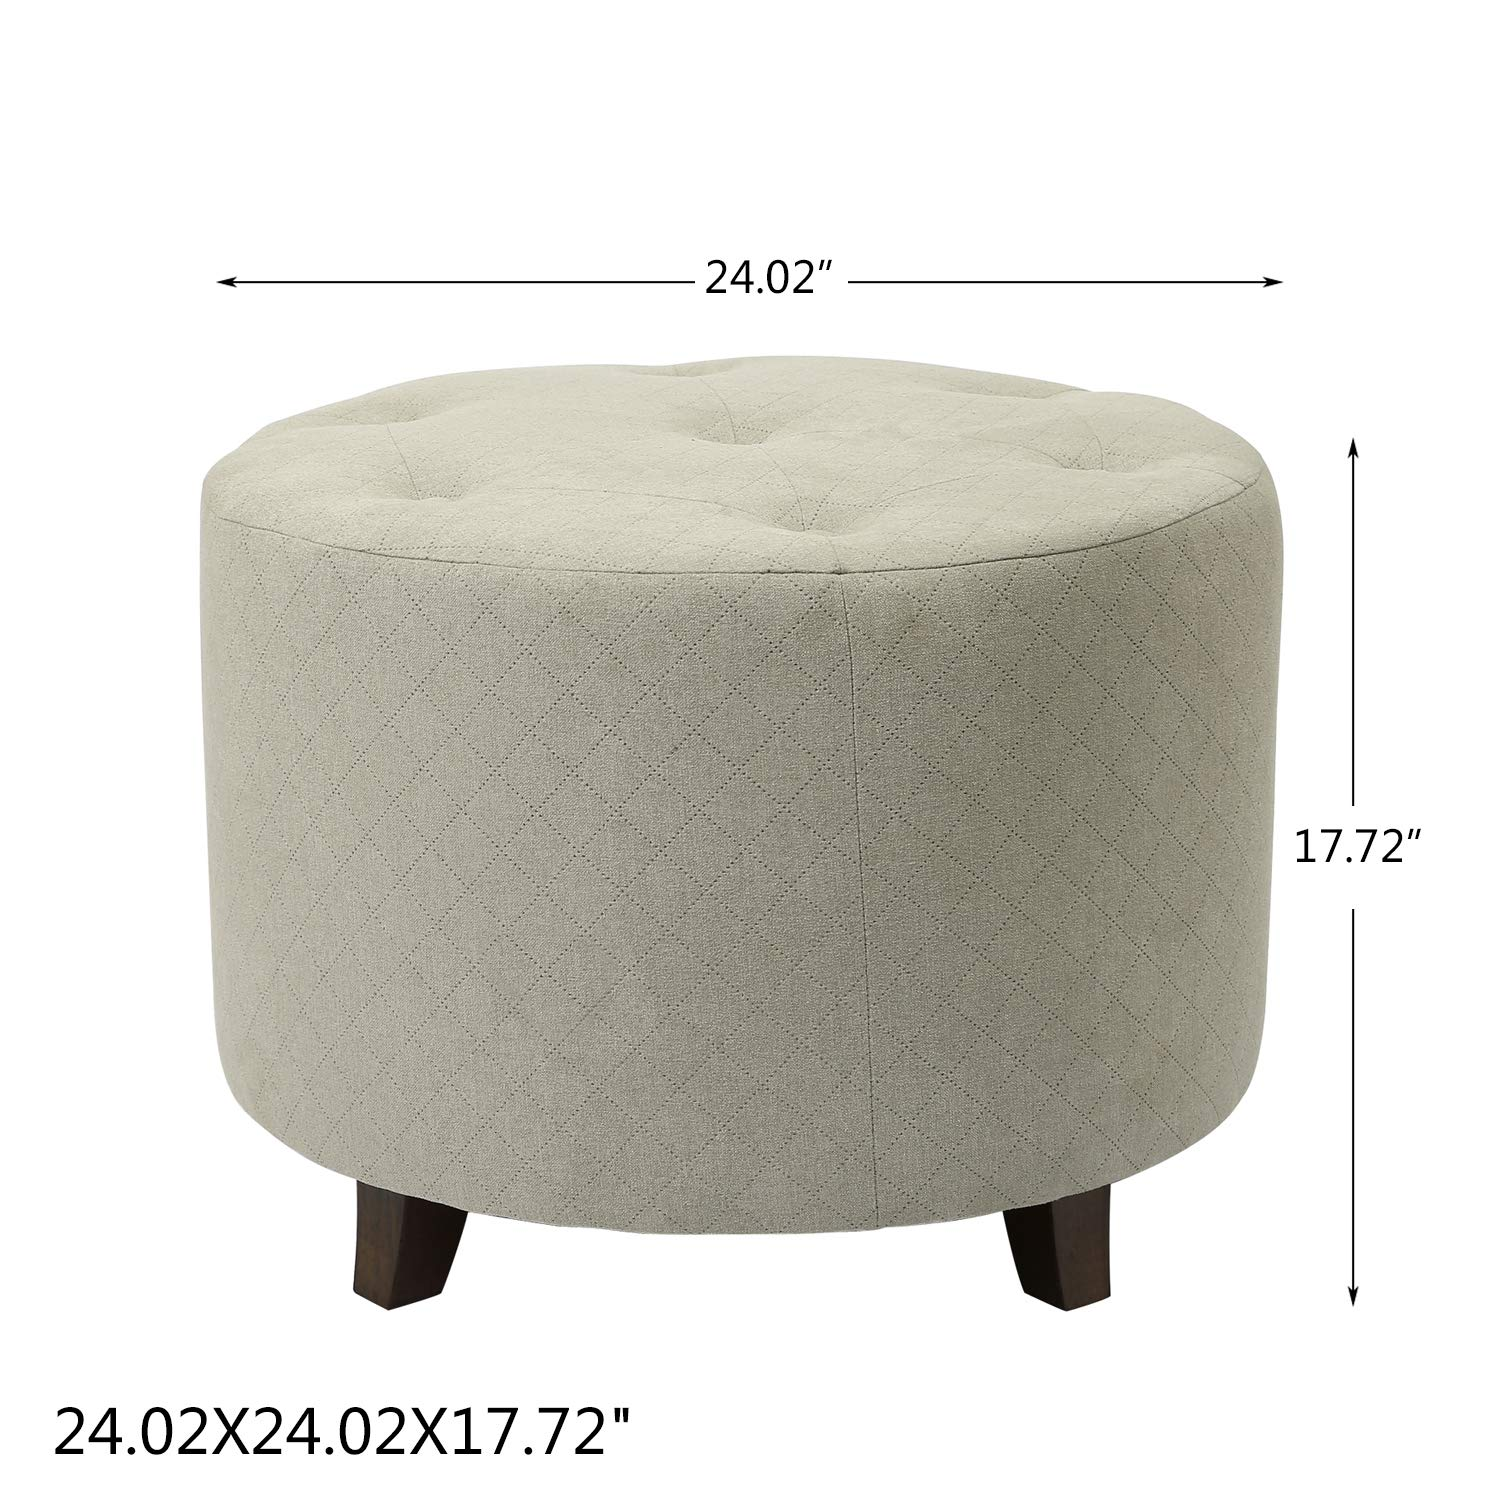 Amazoncom Adeco Ft0273 1 Round Fabric Foot Rest And Seat Modern